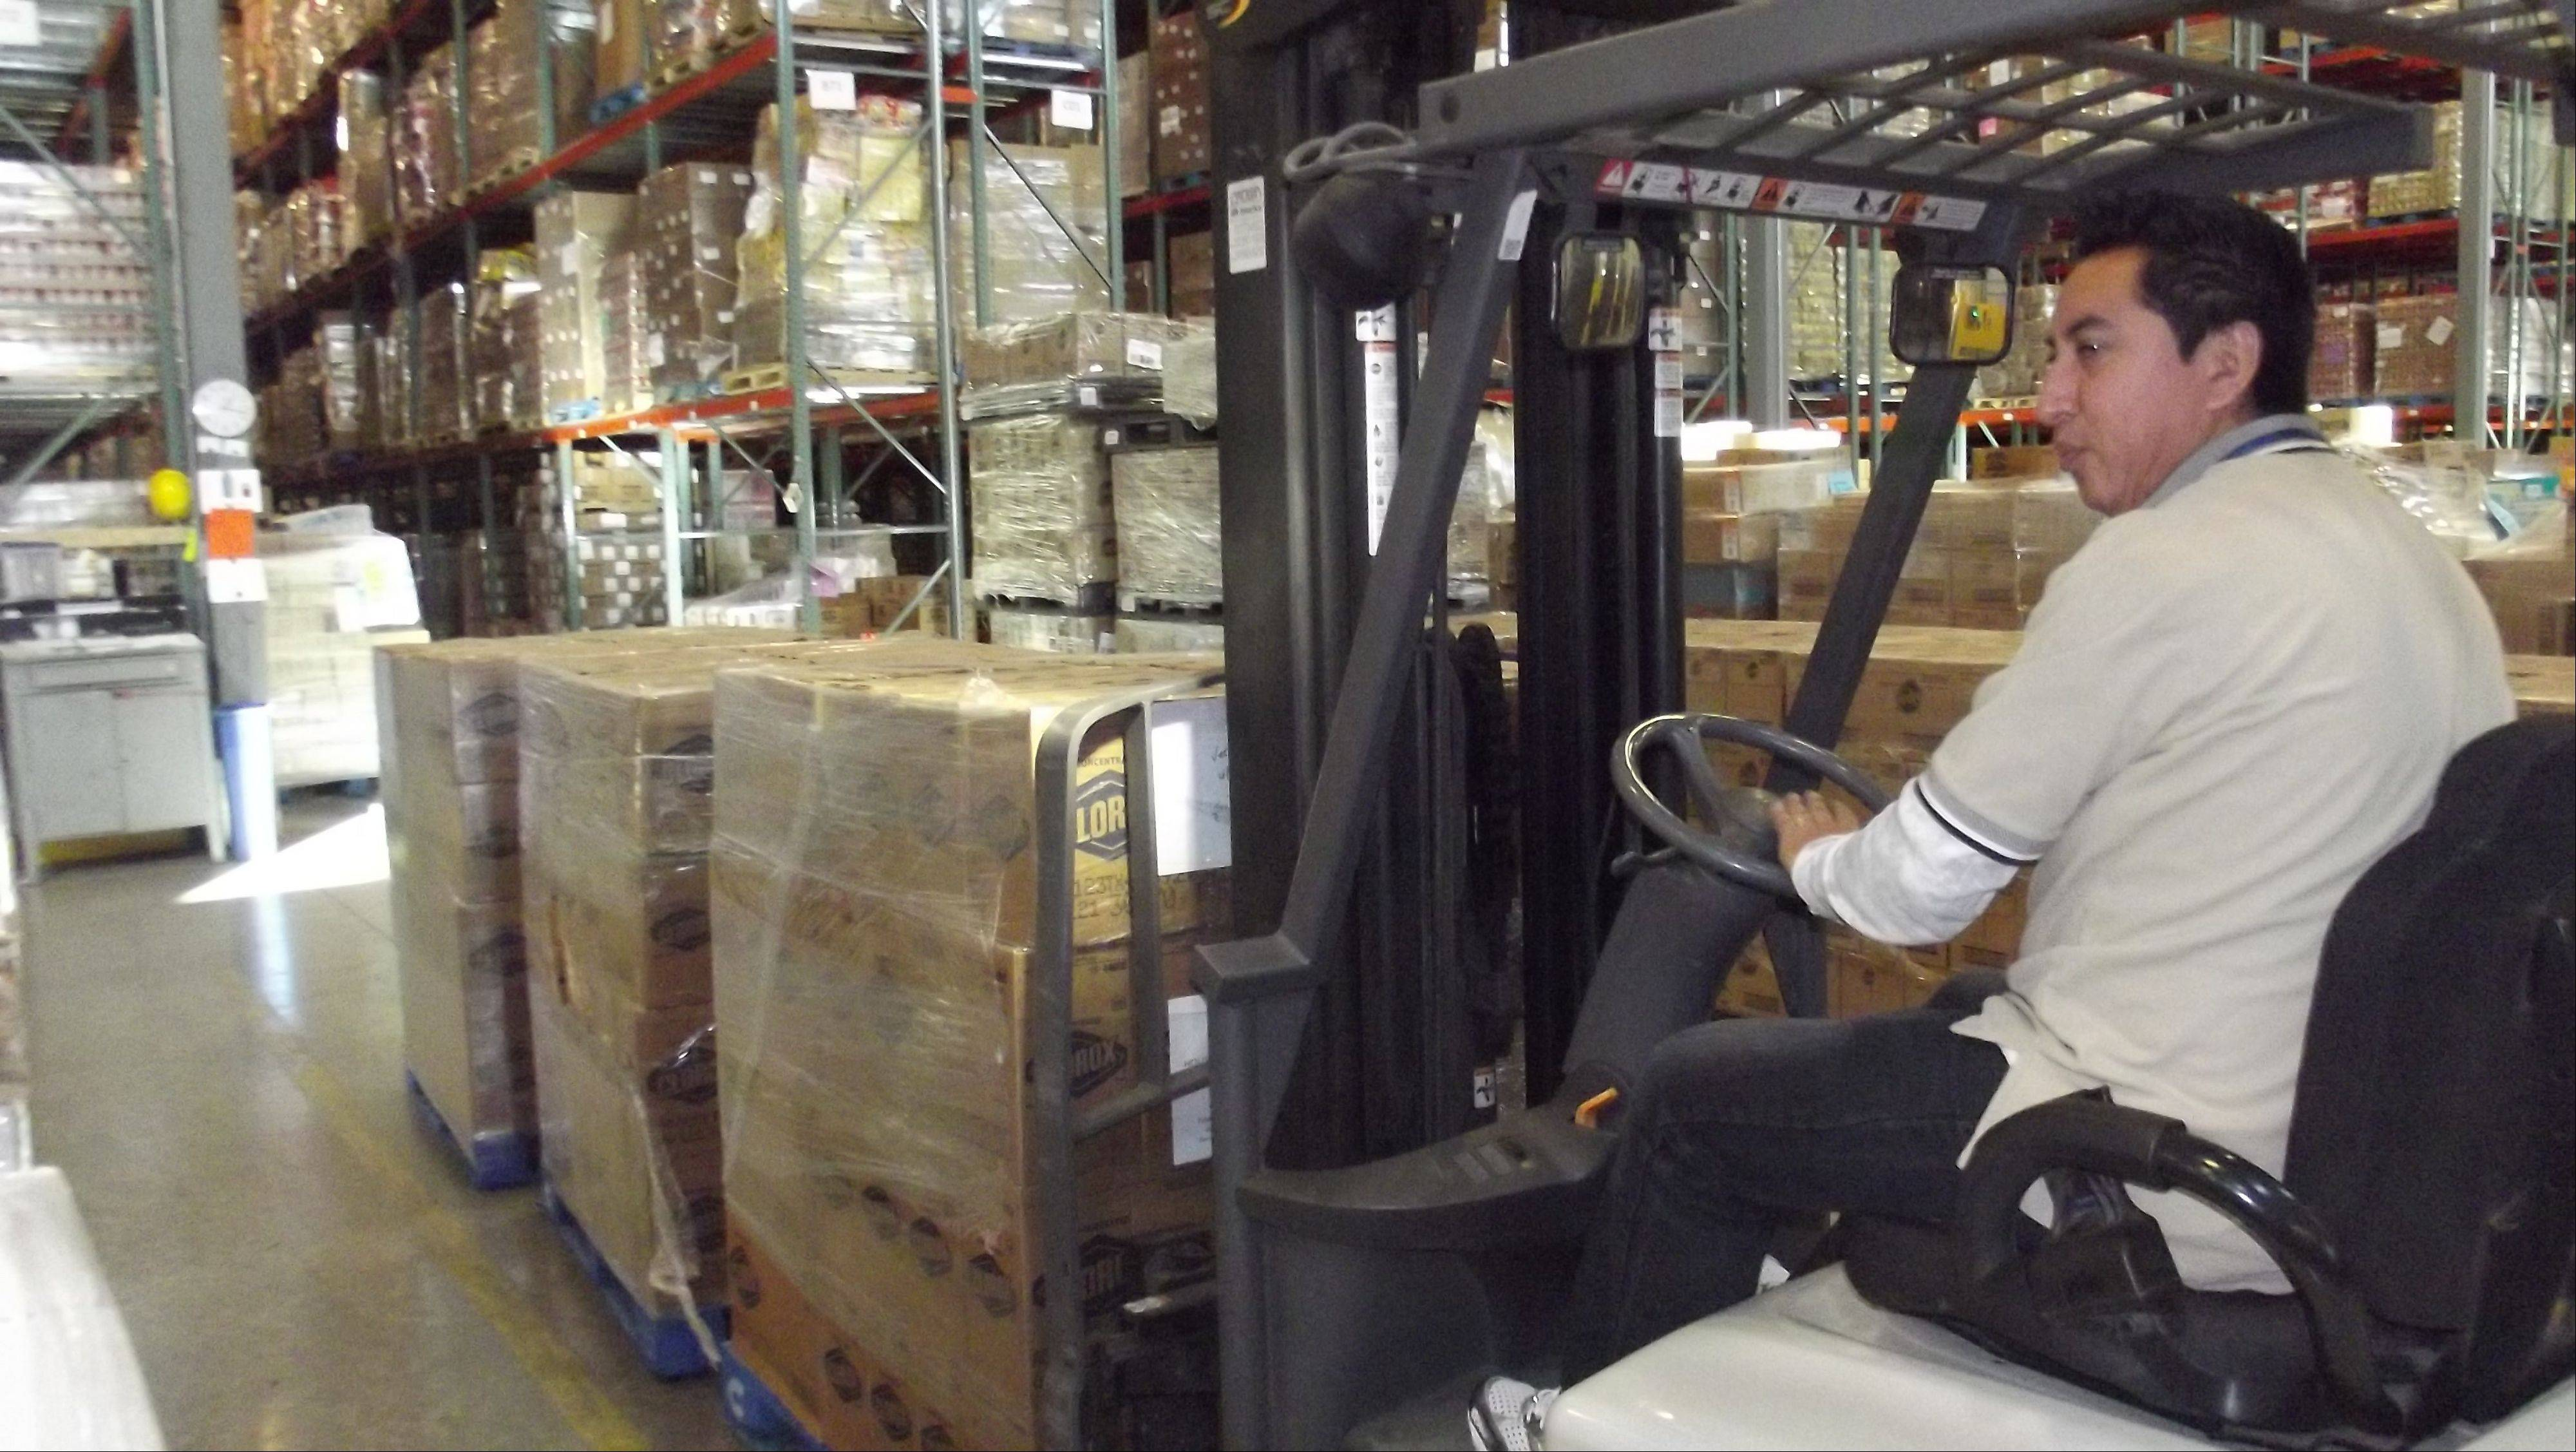 Genaro Elizalde, warehouse manager of the Northern Illinois Food Bank in St. Charles, preps the donation of a truckload of bleach to Island Harvest Food Bank in New York for delivery.